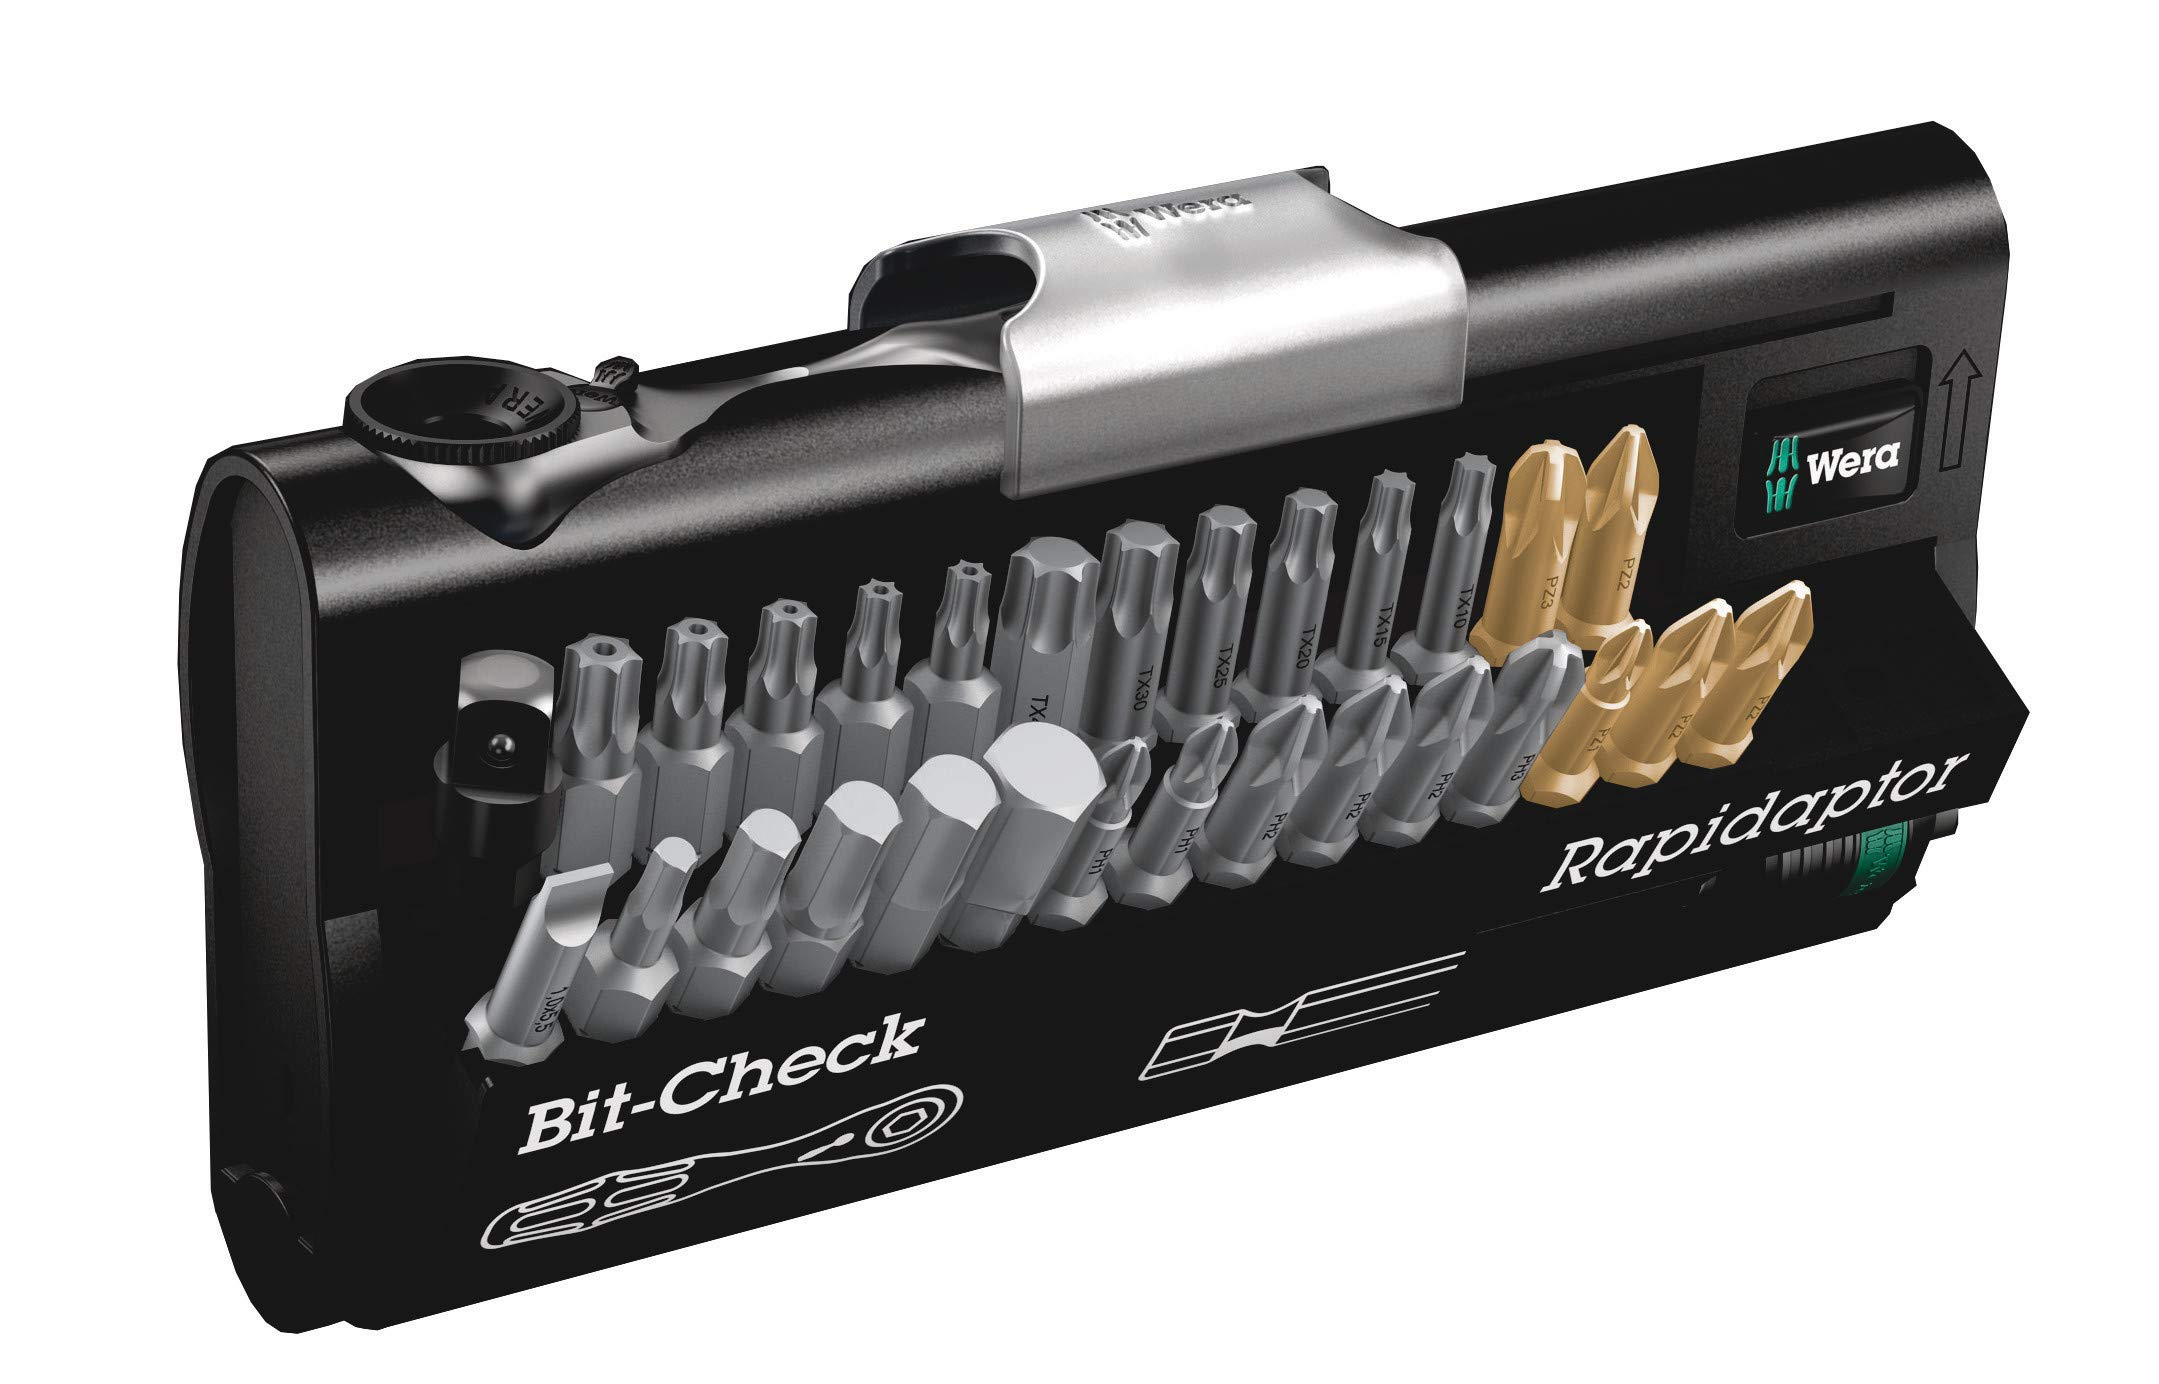 Wera 05073640001 30 Universal Bit Ratchet (Zyklop Mini) Set, 26Piece by Wera